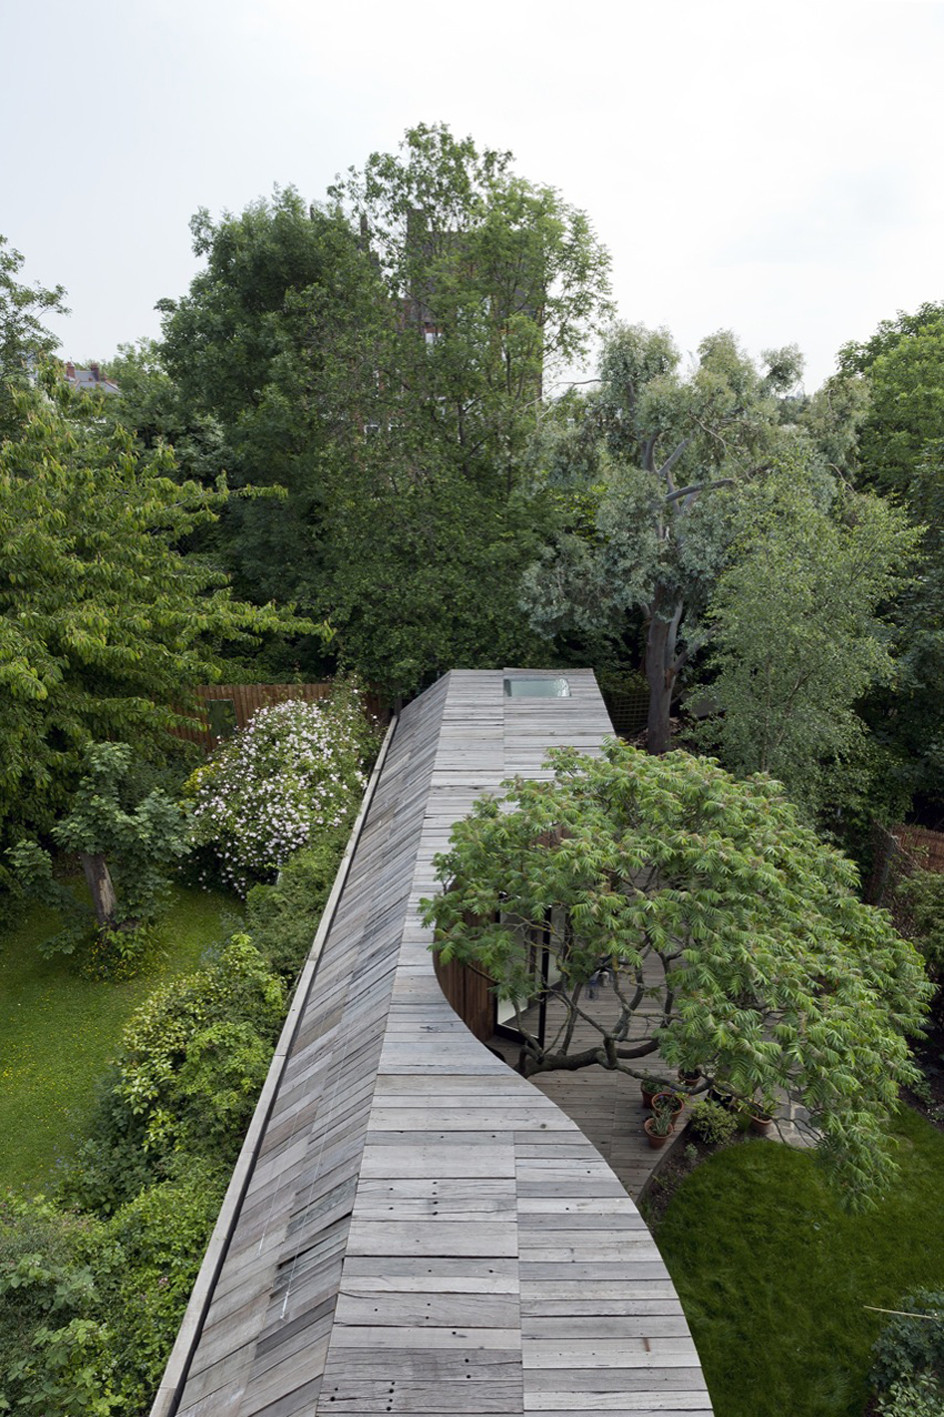 Gallery of tree house 6a architects 6 for Architecture and design tree house